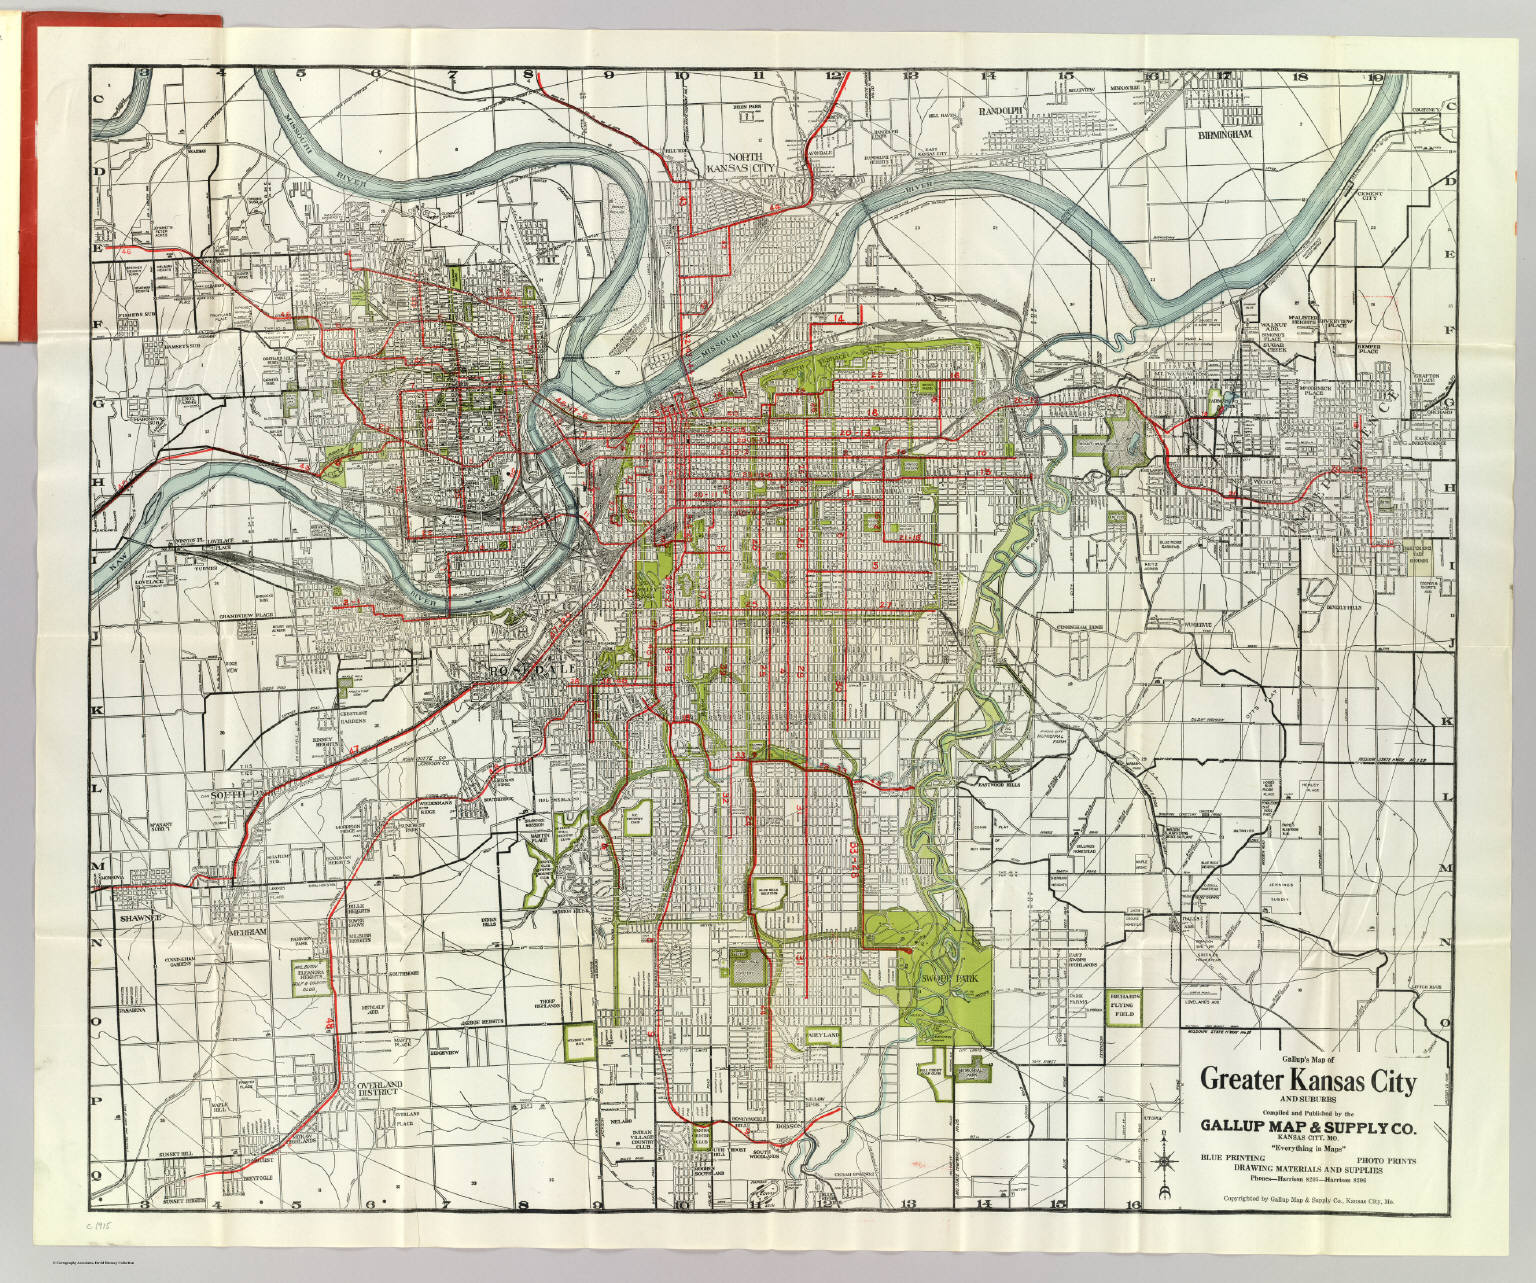 Kansas City Gallup Map Supply Company 1920